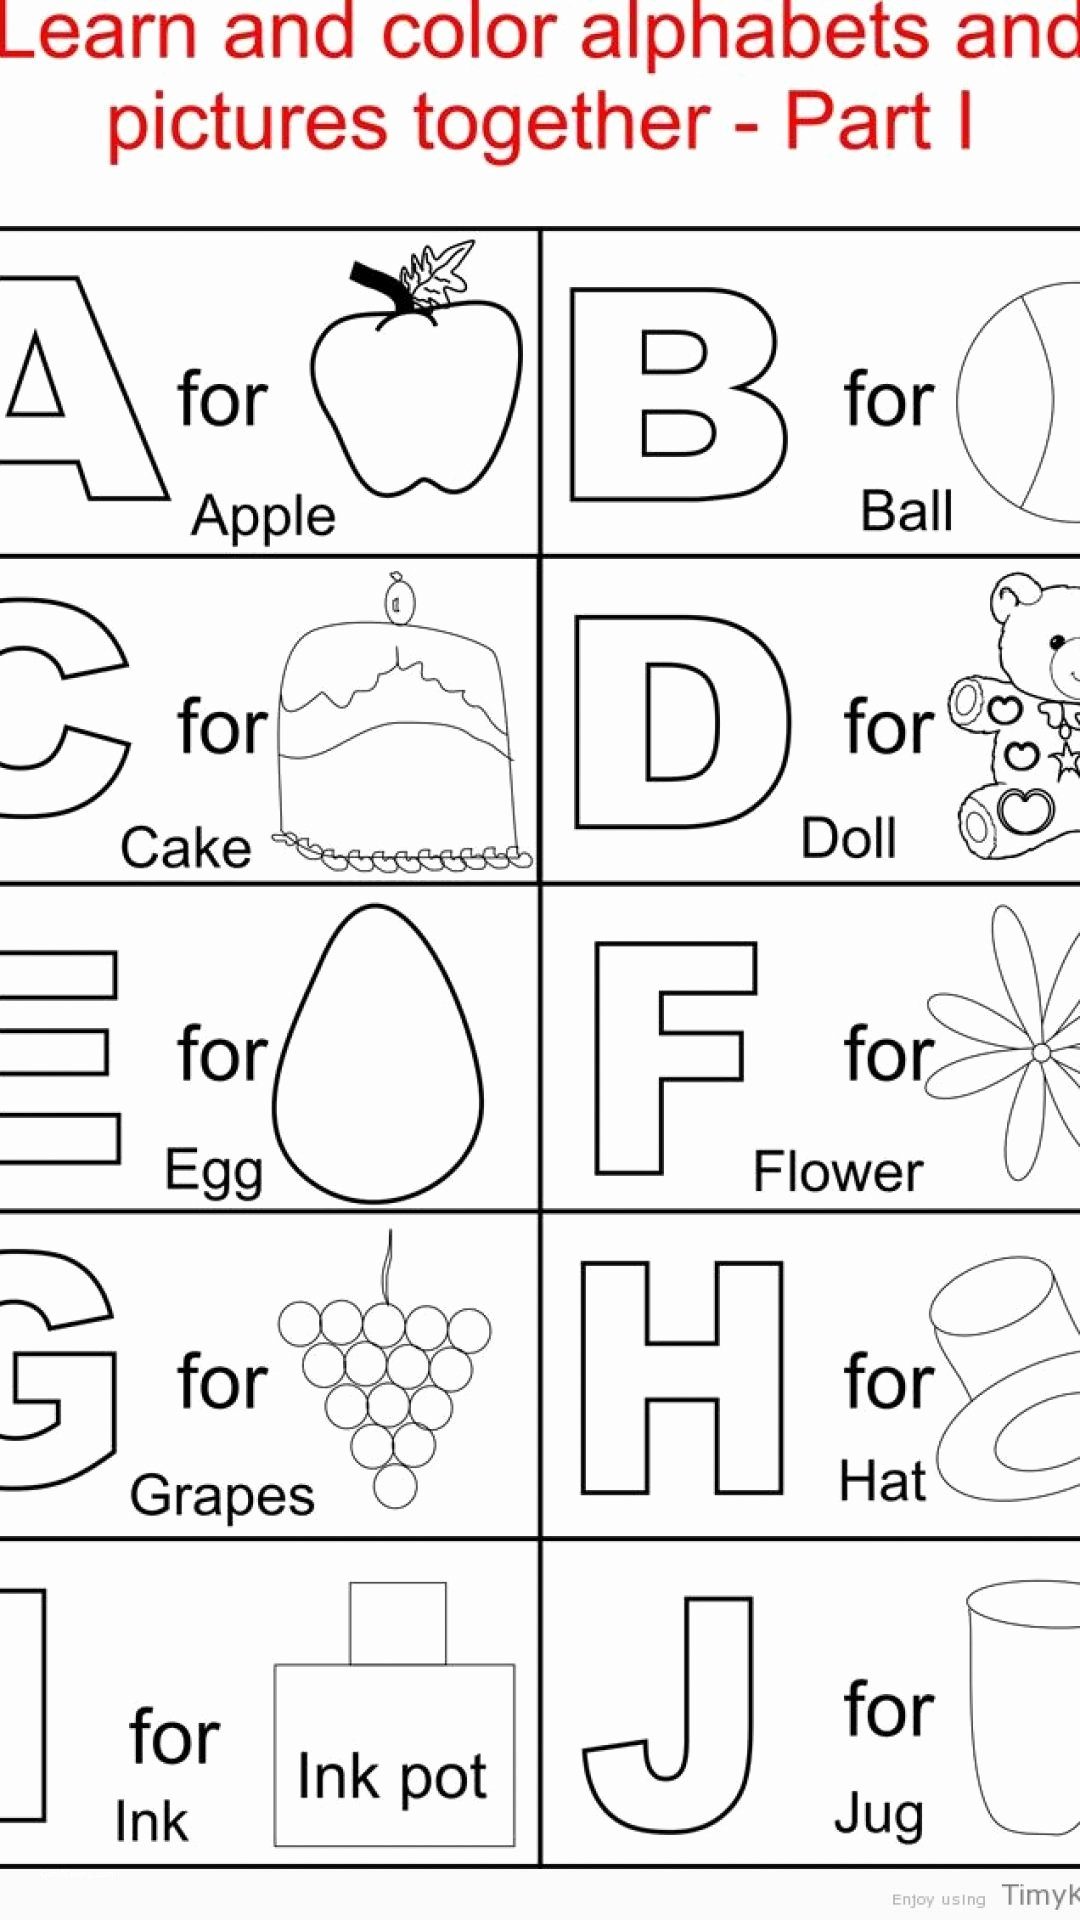 Alphabet Coloring Worksheets for Preschoolers Kids Alphabet Coloring Pages for toddlers Beautiful Pdf